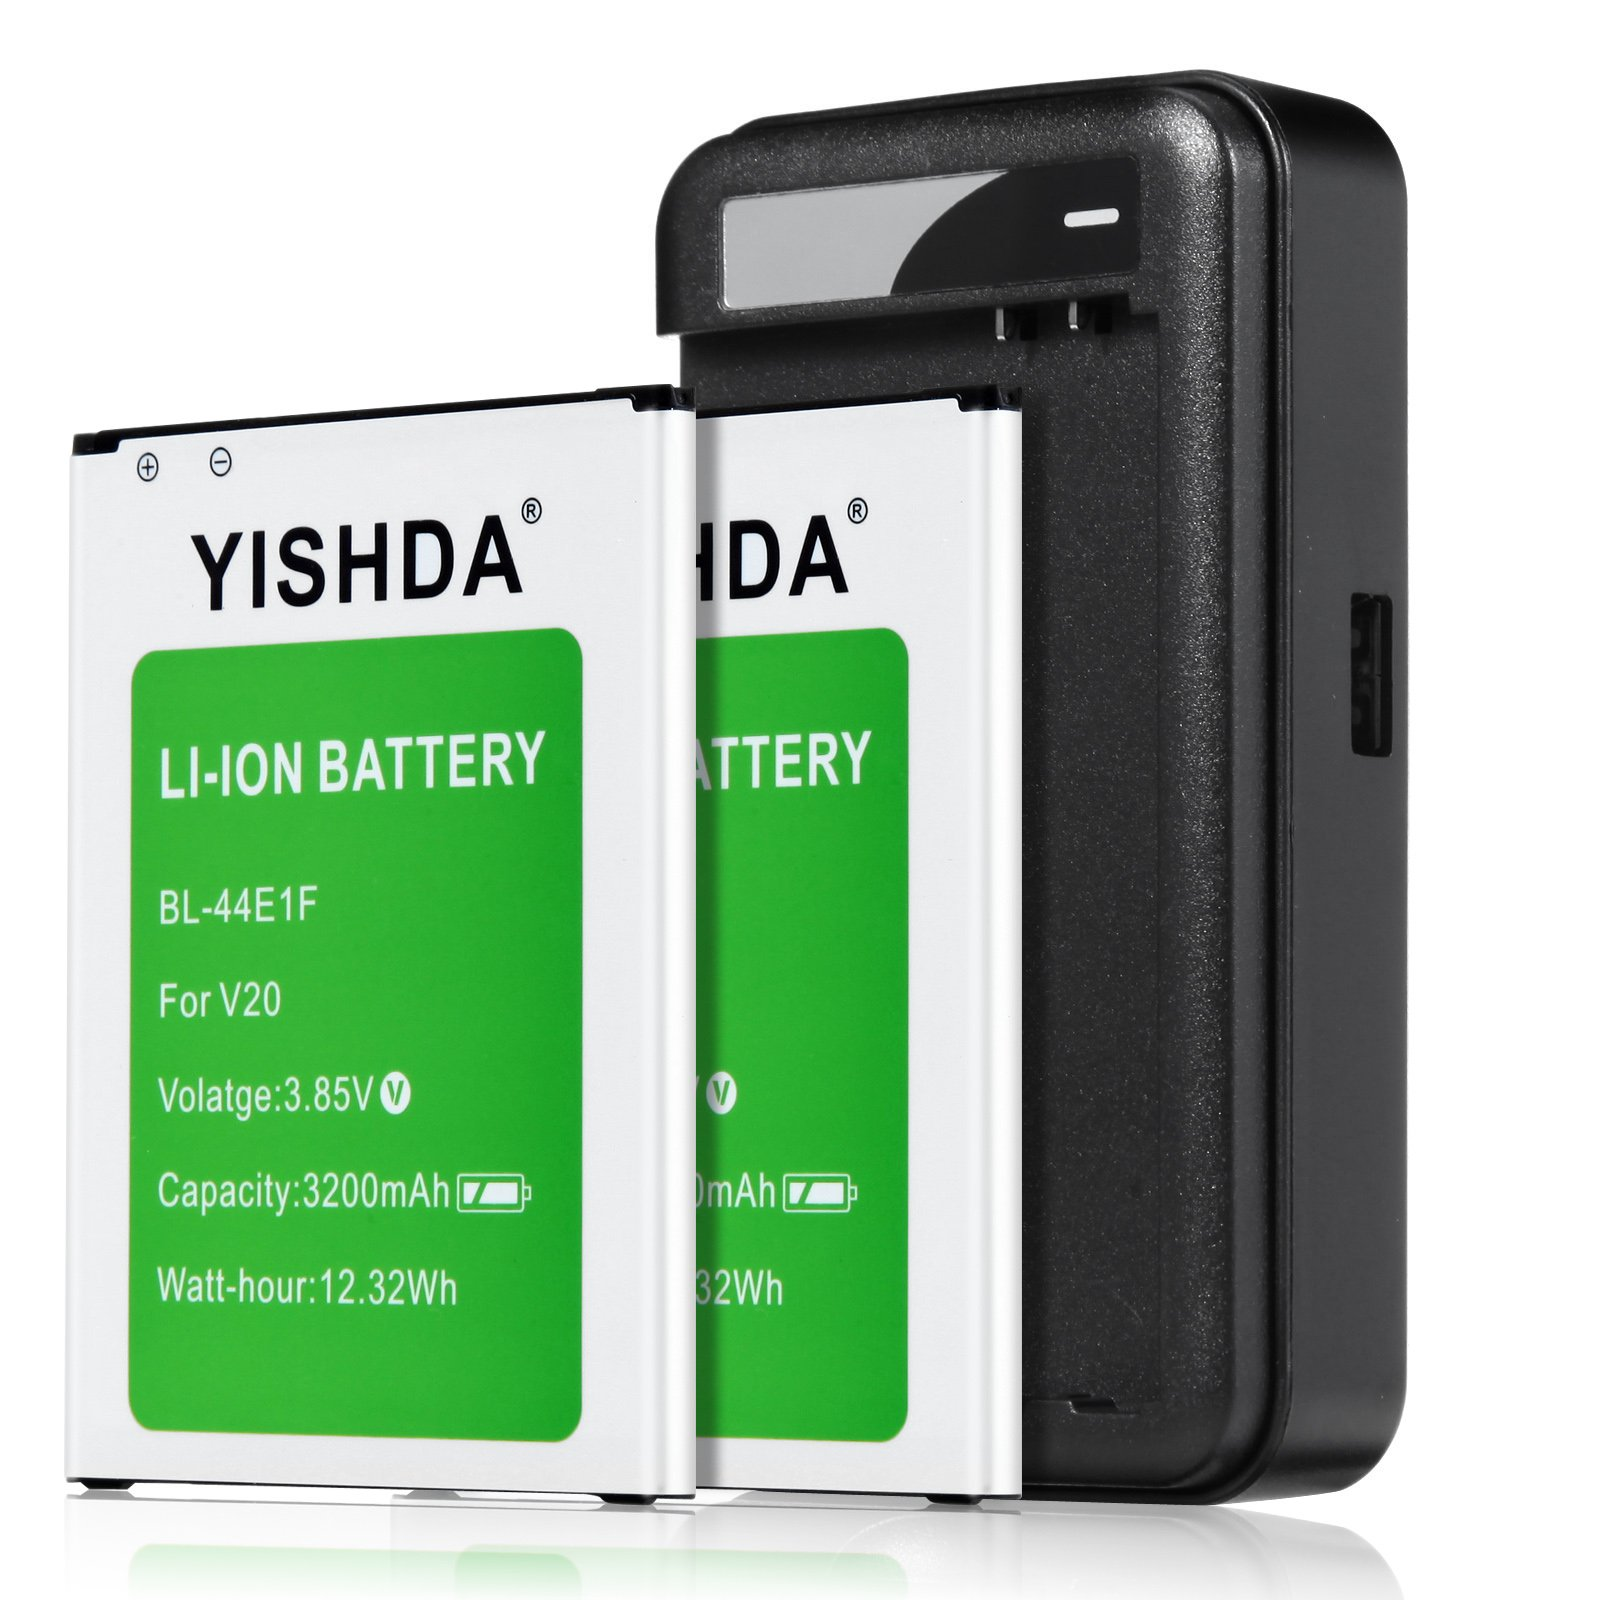 LG V20 Batteries | YISHDA 2 X 3200mAh Replacement LG BL-44E1F Battery with LG V20 Spare Battery Wall Charger for LG V20 H910 H918 LS997 US996 VS995 | LG V20 Battery and Charger Kit [18 Month Warranty]